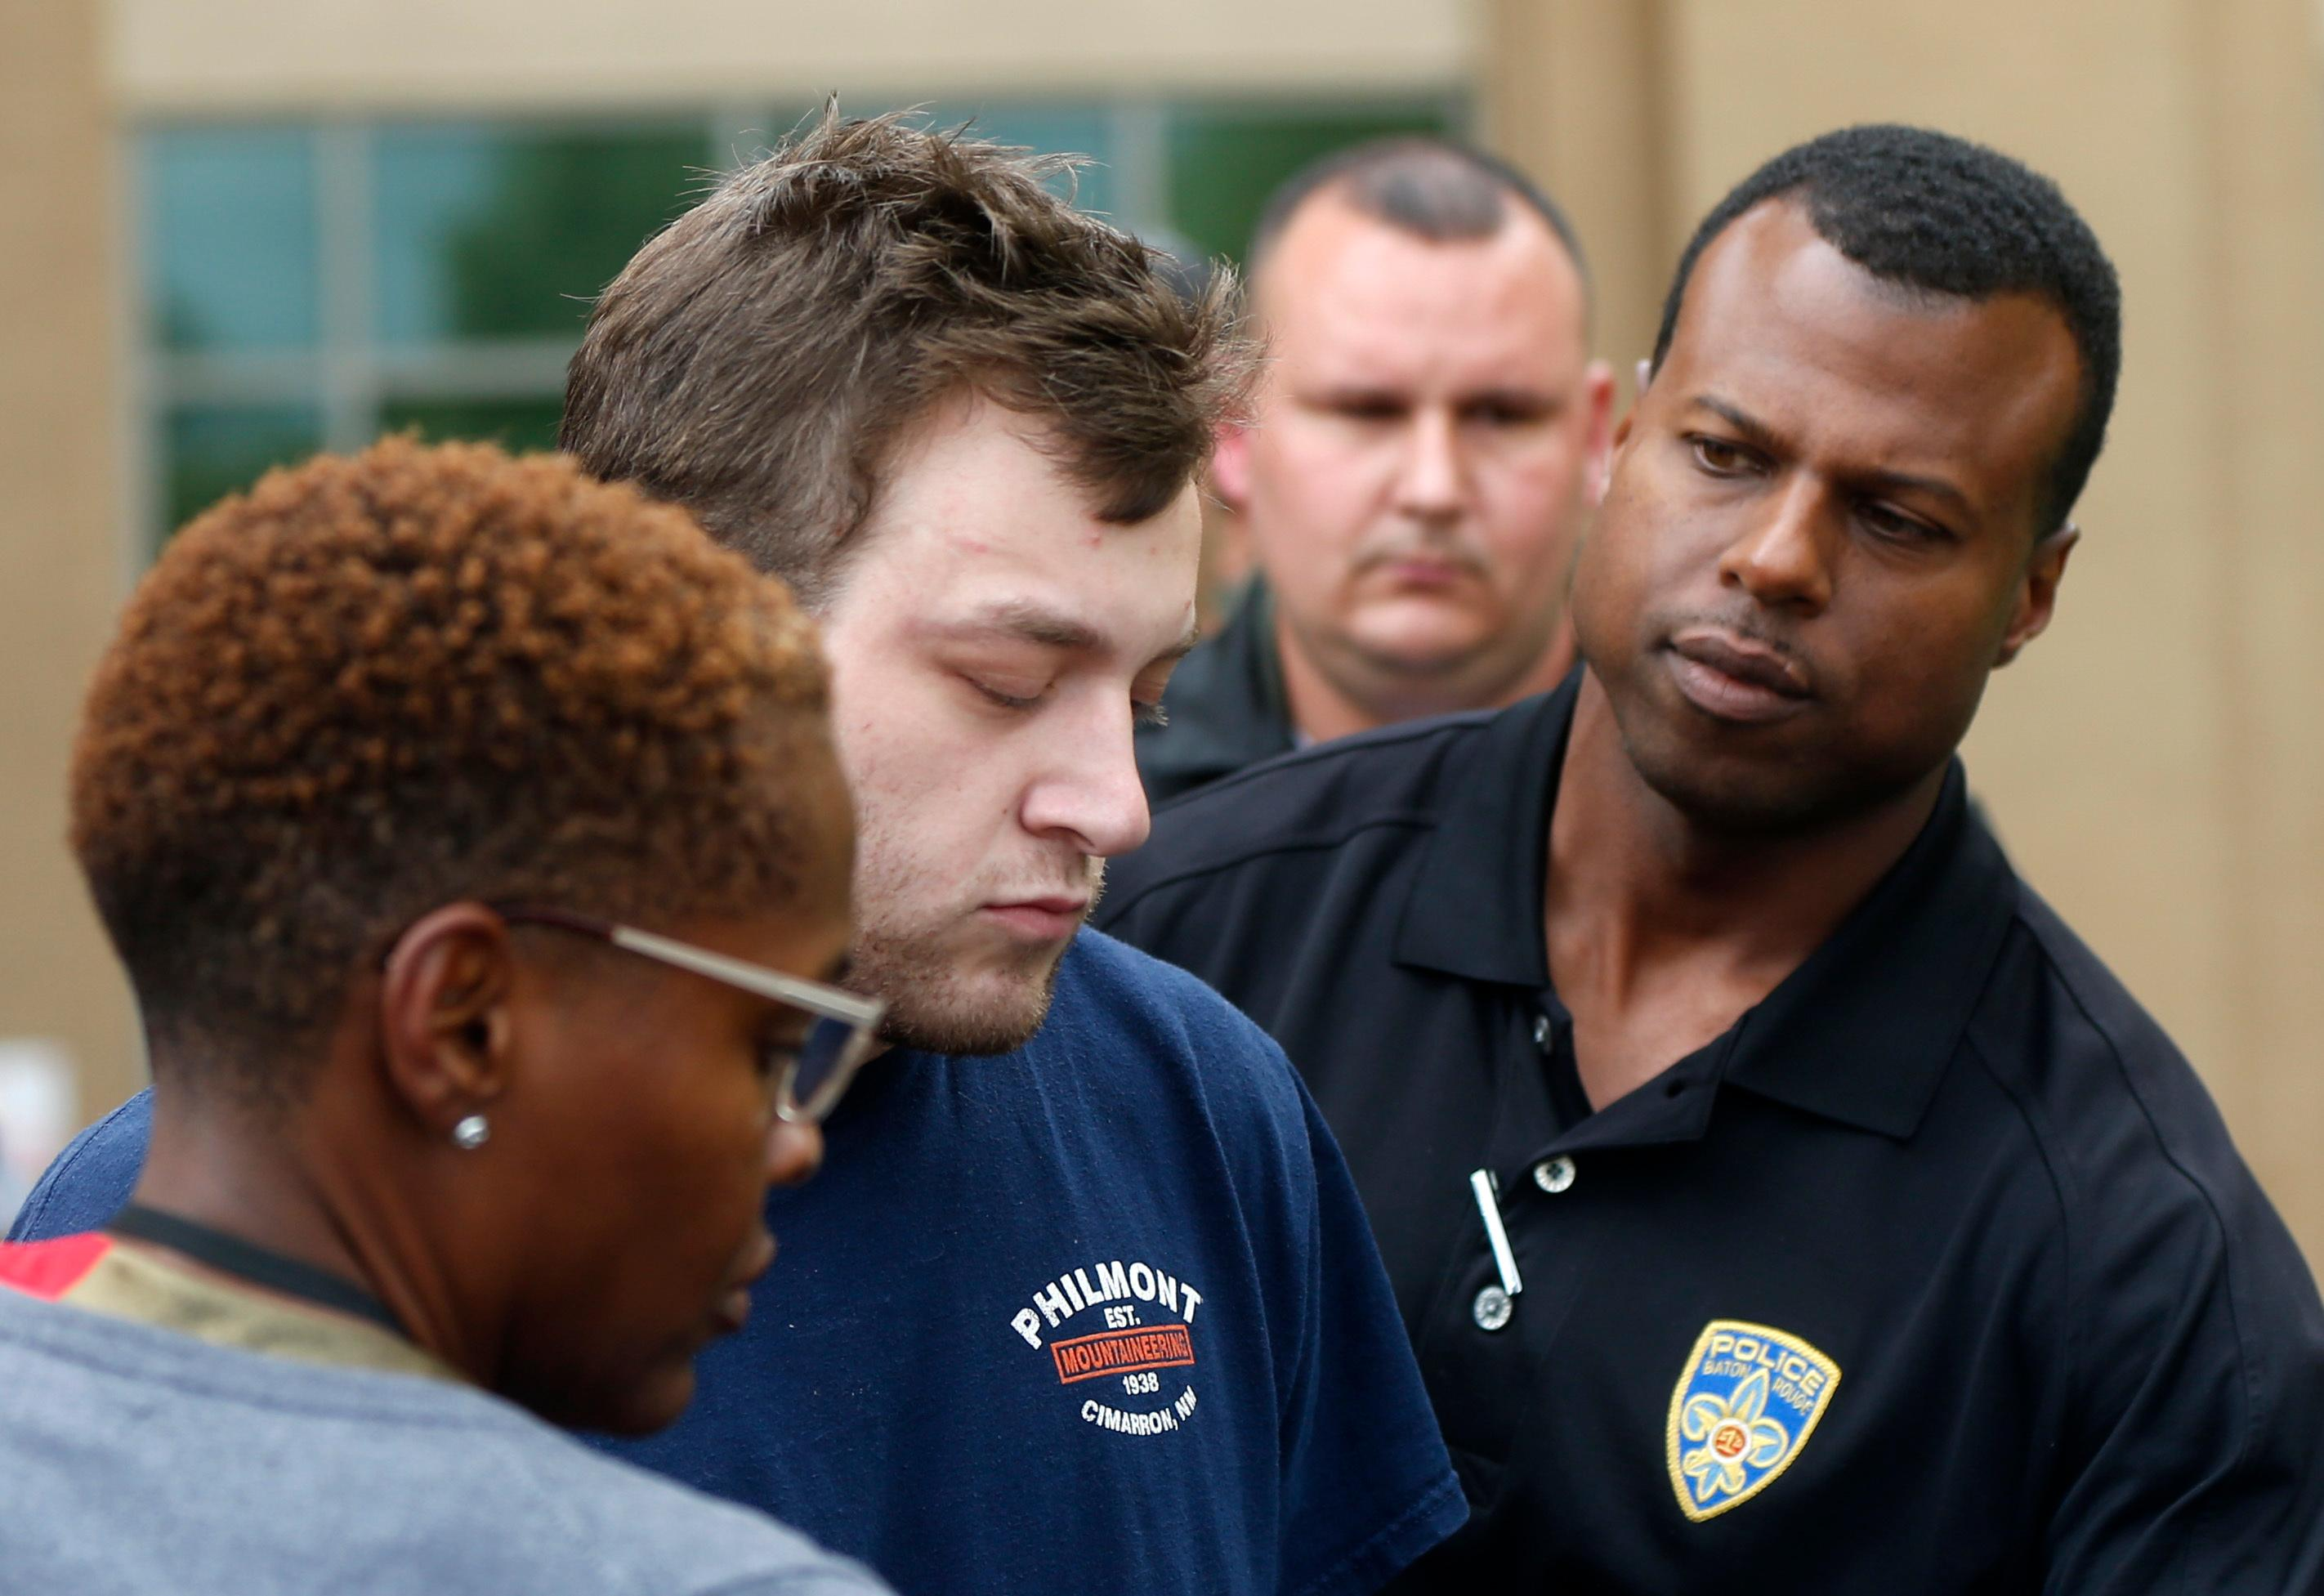 Kenneth James Gleason is escorted by police to a waiting police car in Baton Rouge, La., Tuesday, Sept. 19, 2017. Gleason is charged with two counts of first degree murder and other charges, for three shootings in the Baton Rouge area throughout the past week that resulted in the death of two men. (AP Photo/Gerald Herbert)